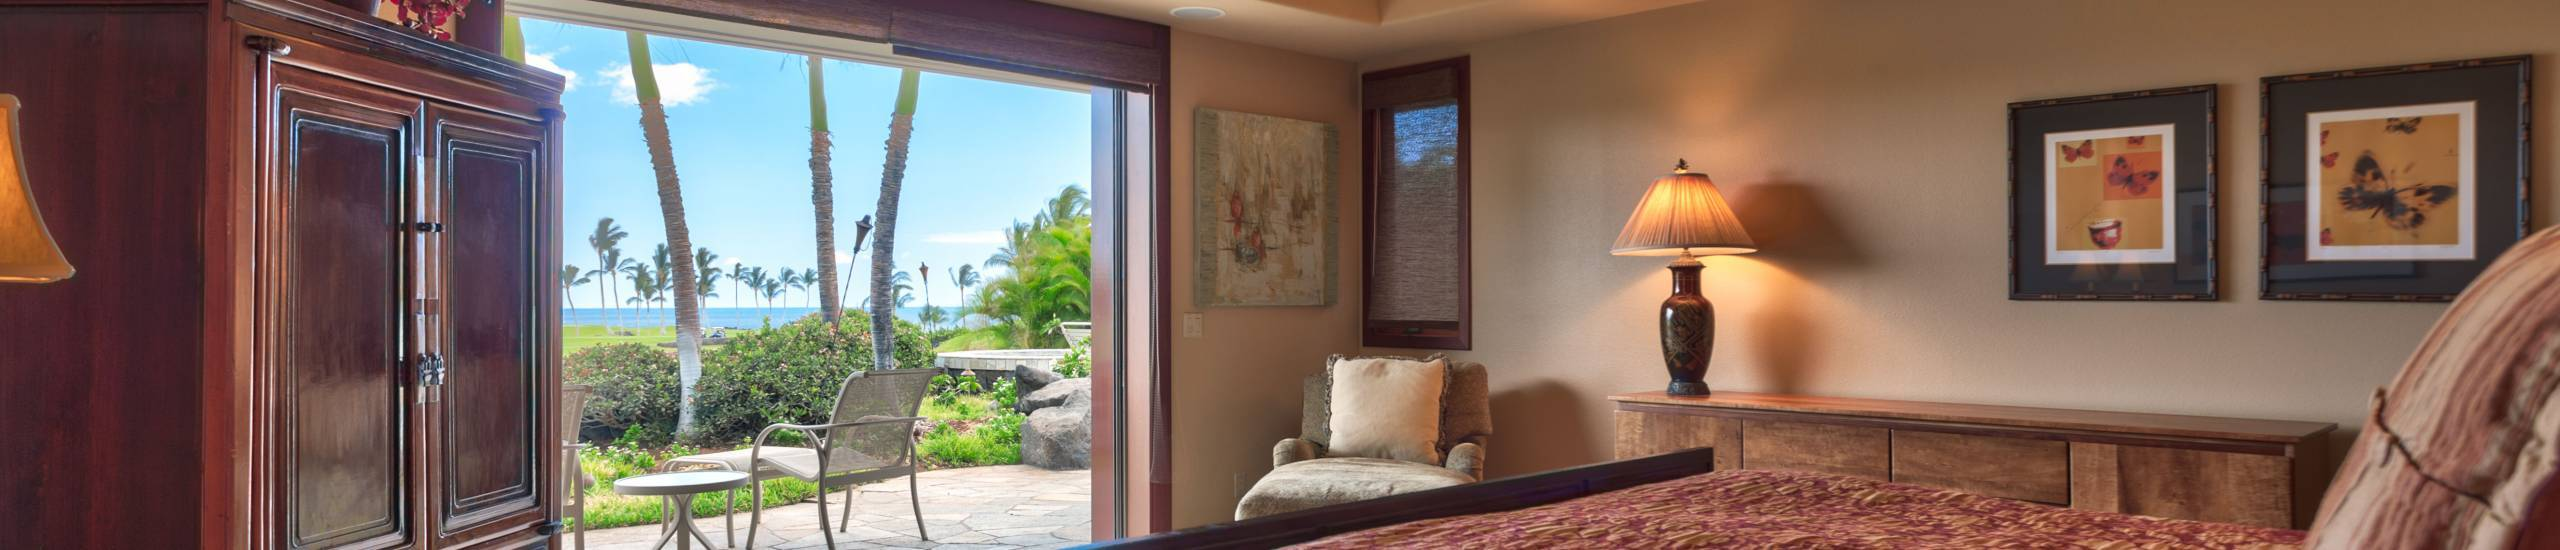 Bedroom with a view in Mauna Lani private home